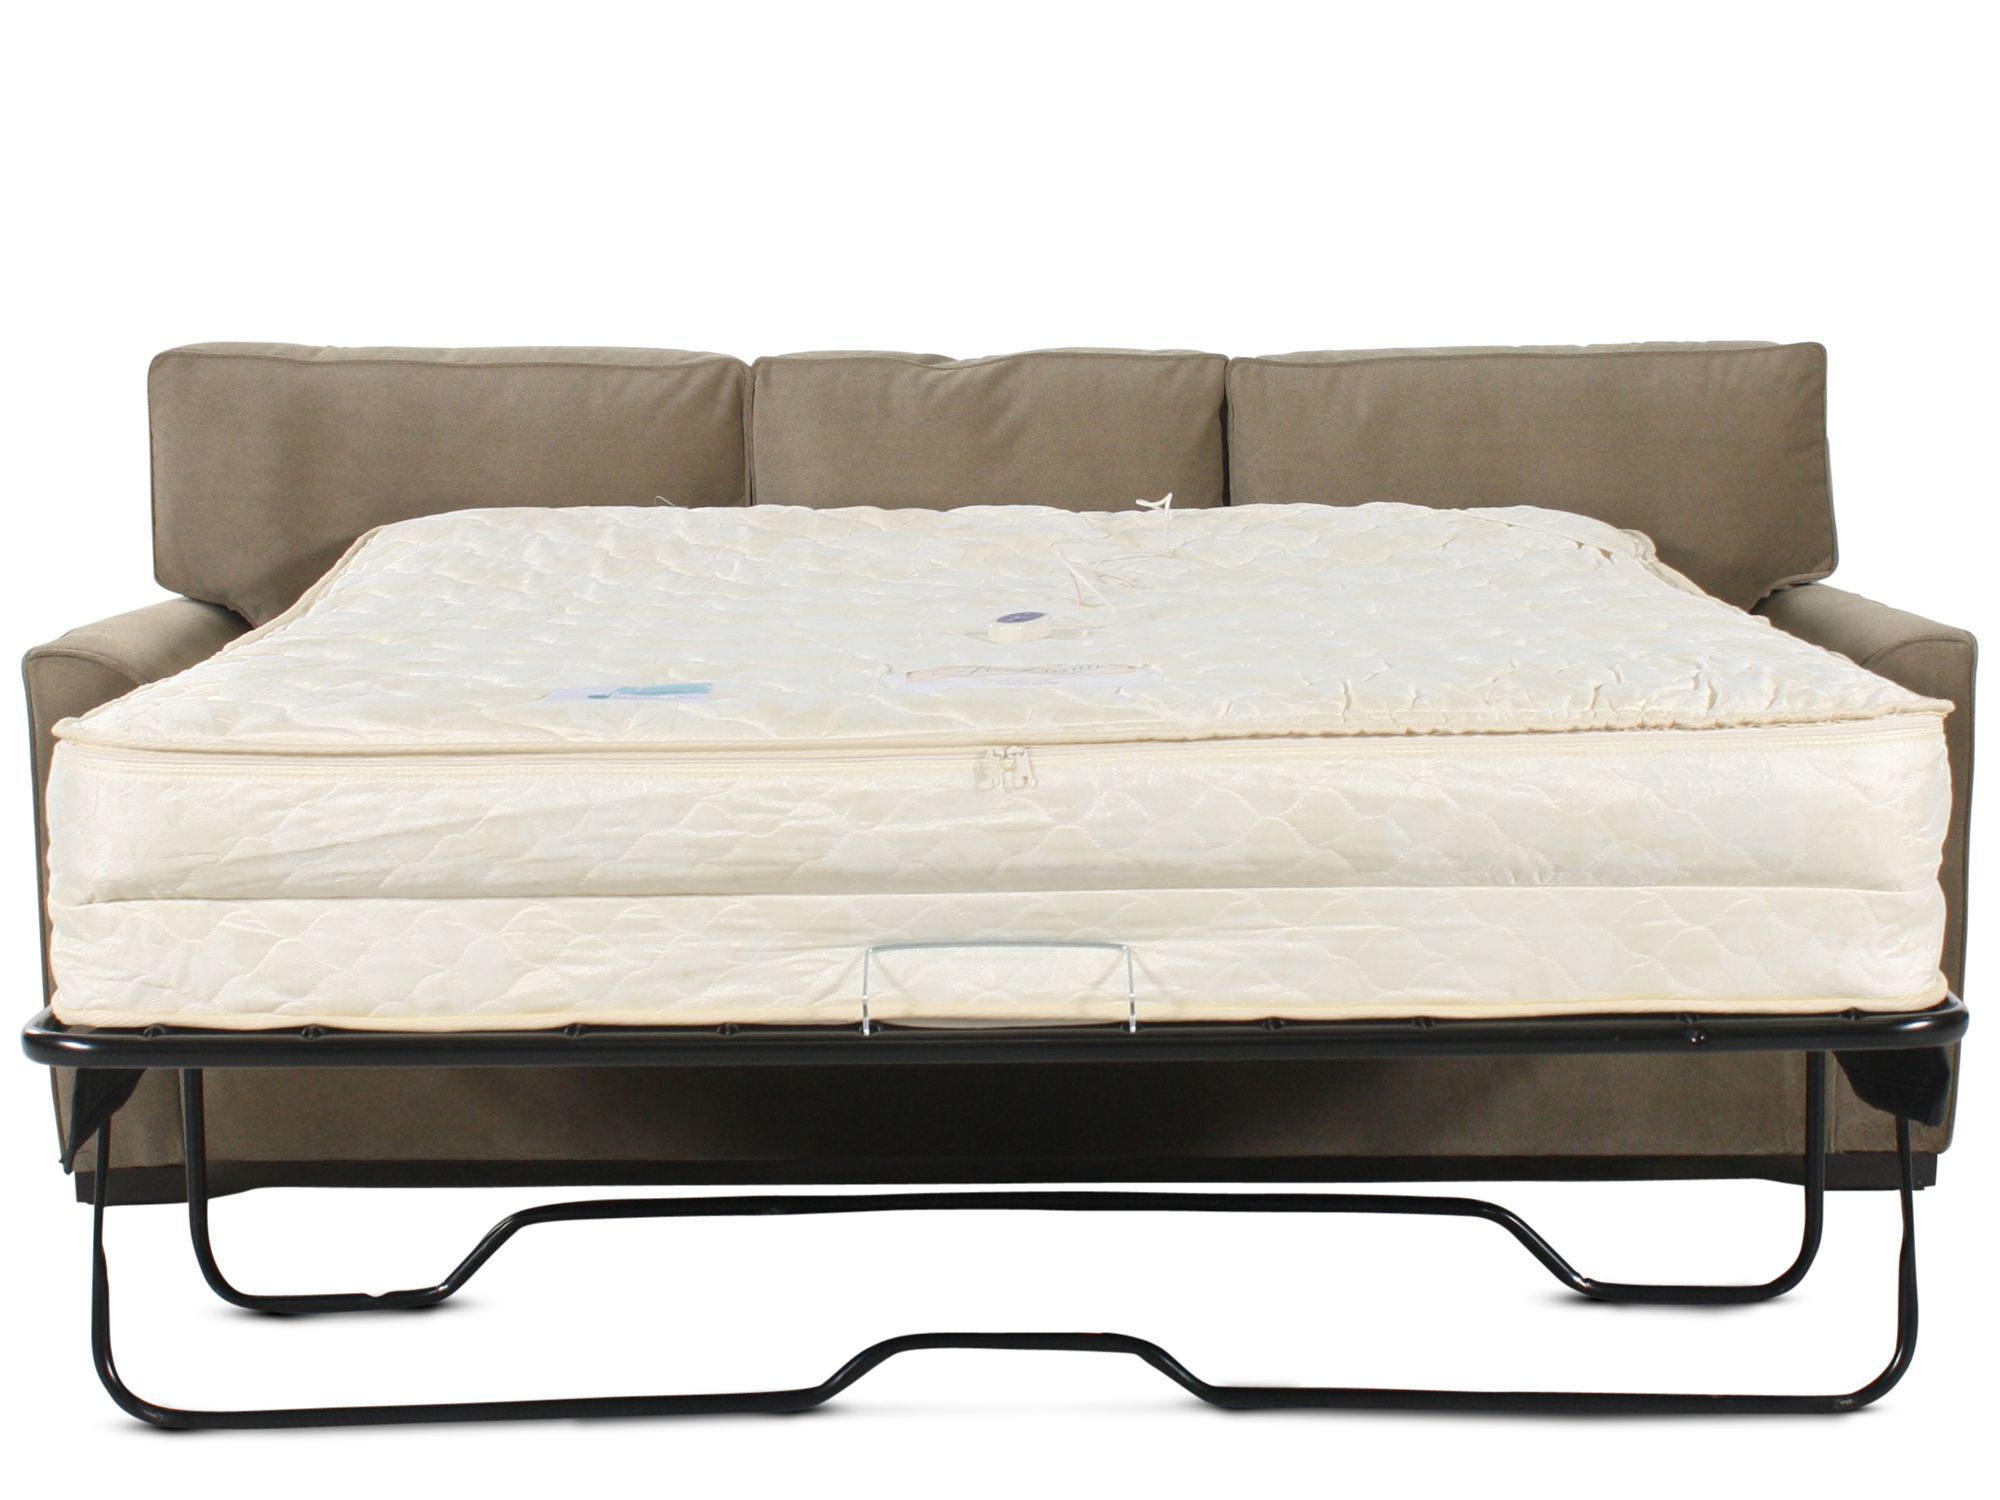 Sofa Mattress Jonathan Louis Queen Sleeper Sofa With Air Mattress